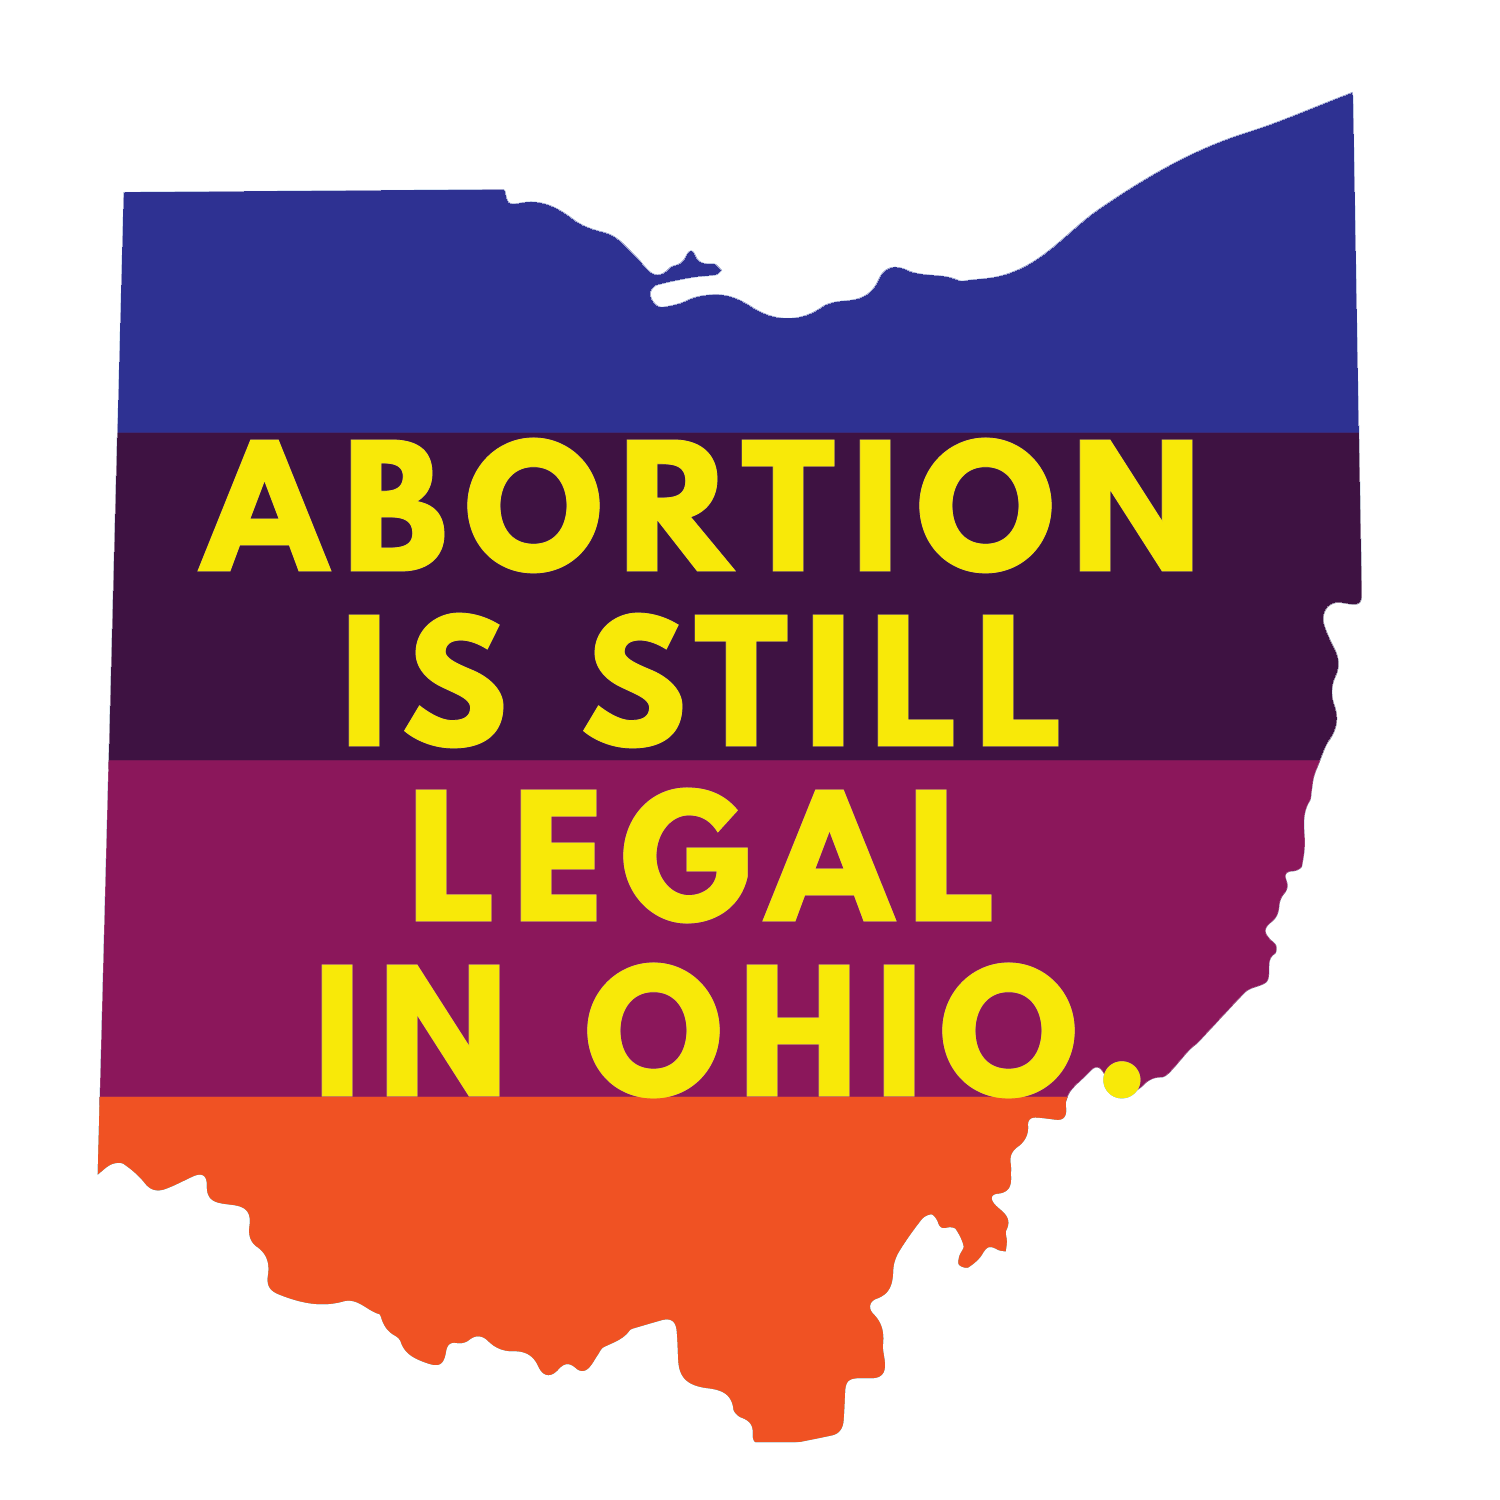 Yes - Abortion is Legal in Ohio